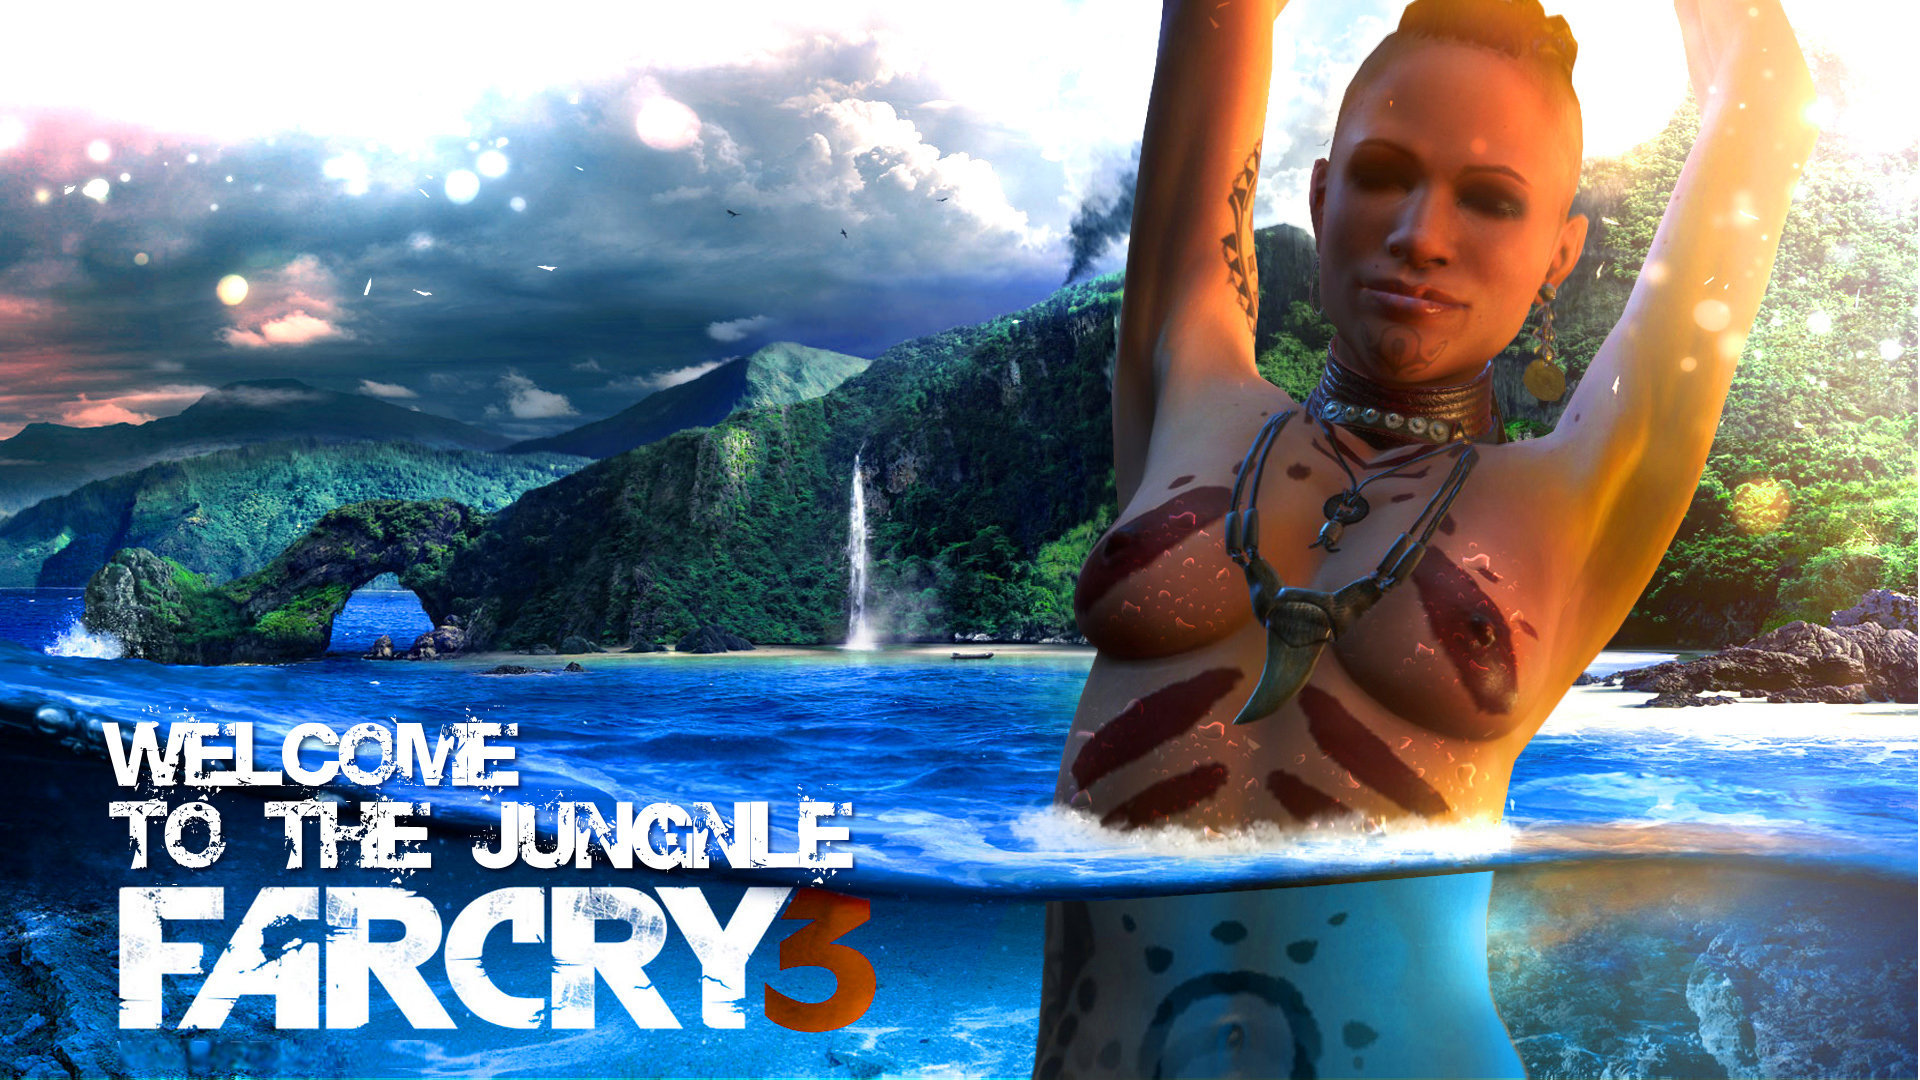 Free Download Far Cry 3 Wallpapers 19201080 23192 Hd Wallpaper Res